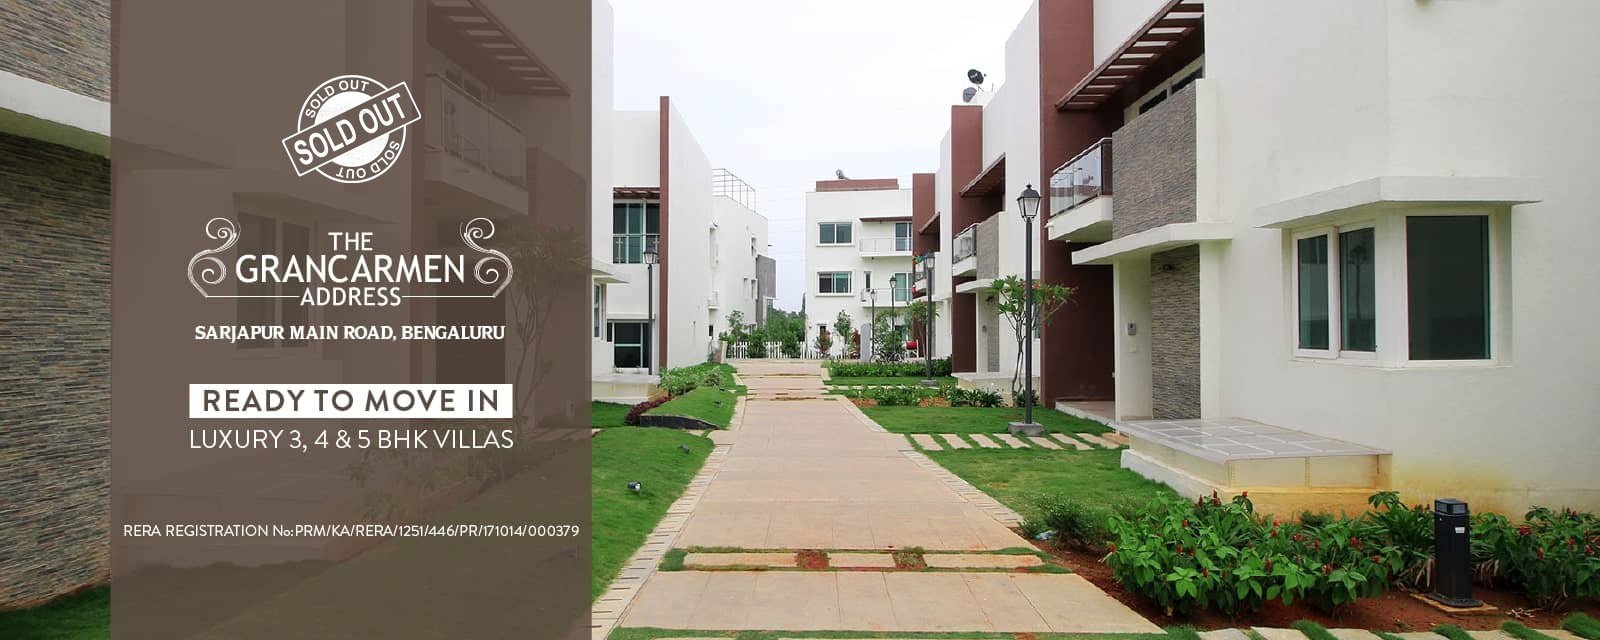 Best Villas In Bangalore